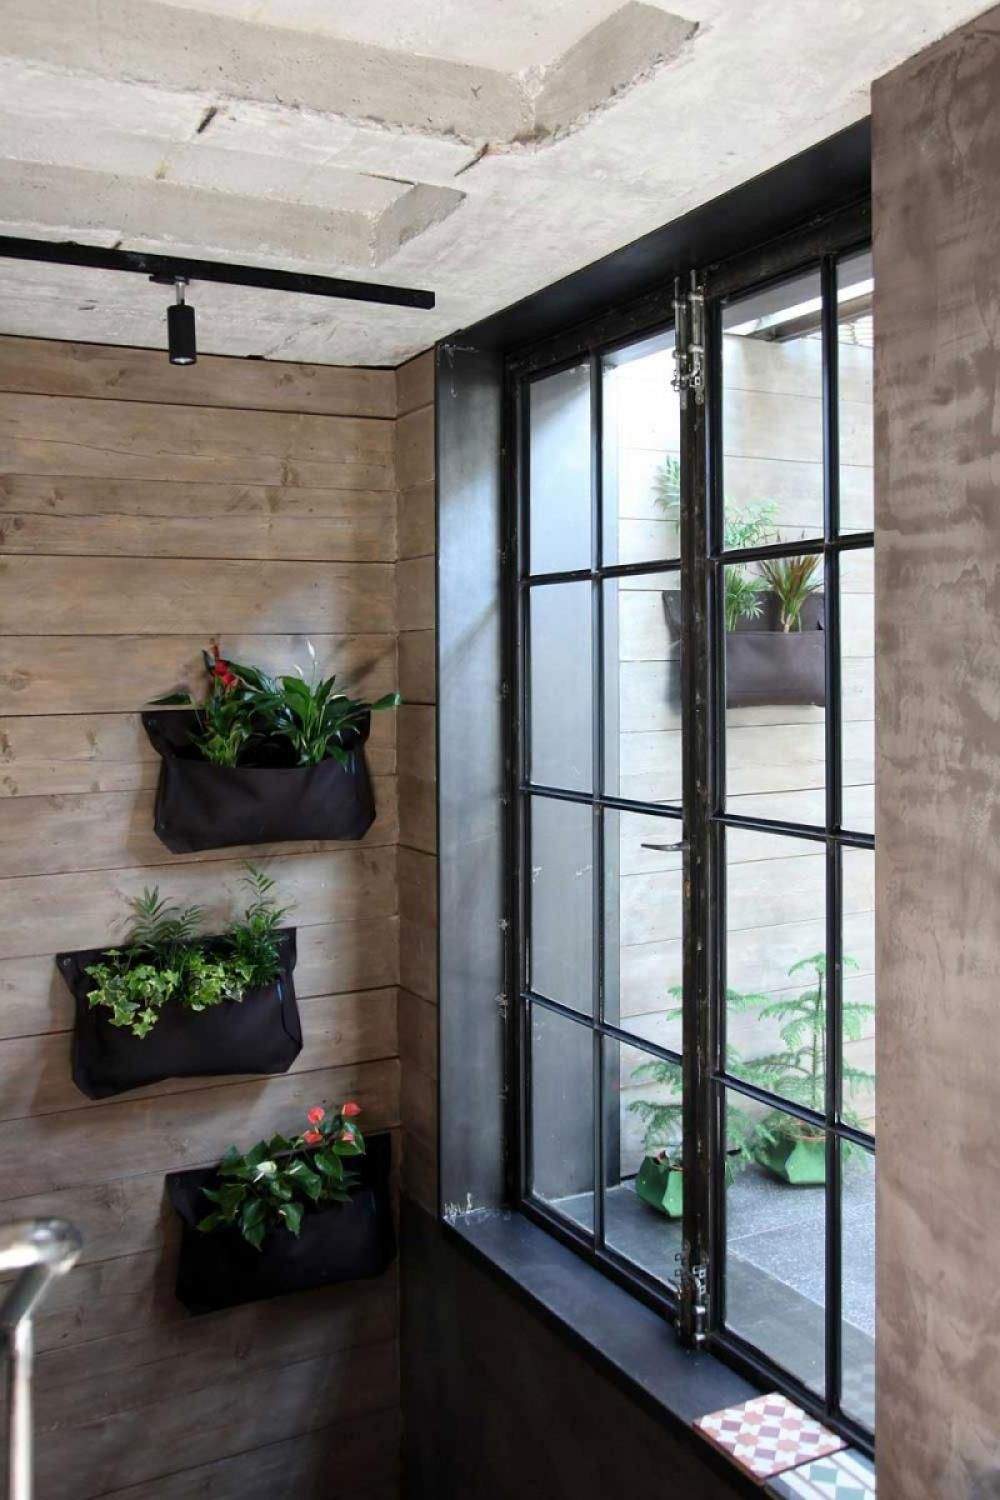 green wall design in wooden wall with exposed concrete ceiling